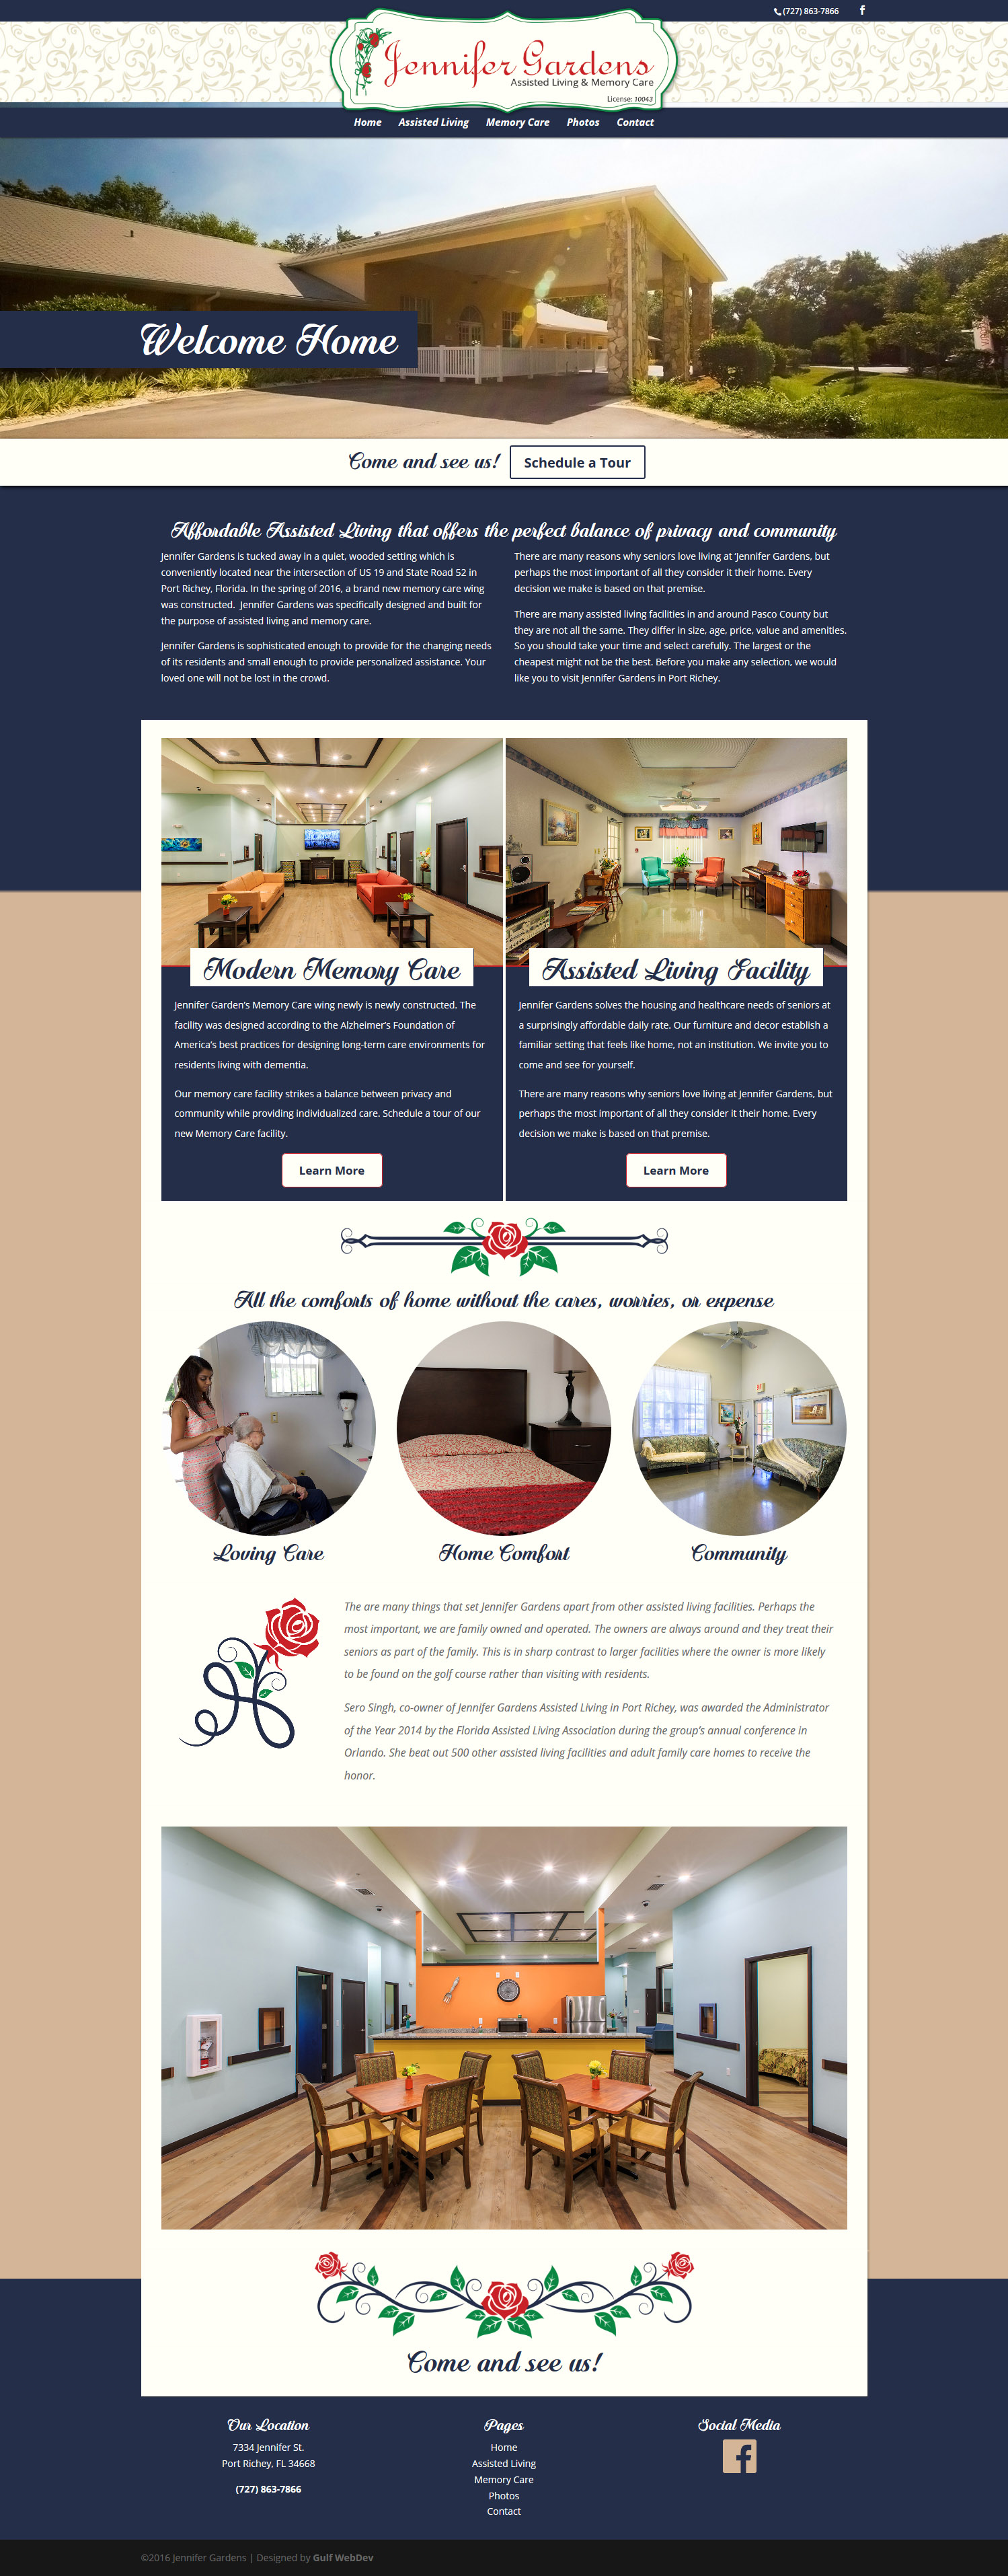 Affordable_Assisted_Living_and_Memory_Care_in_Port_Richey,_FL_-_2016-07-22_16.14.57